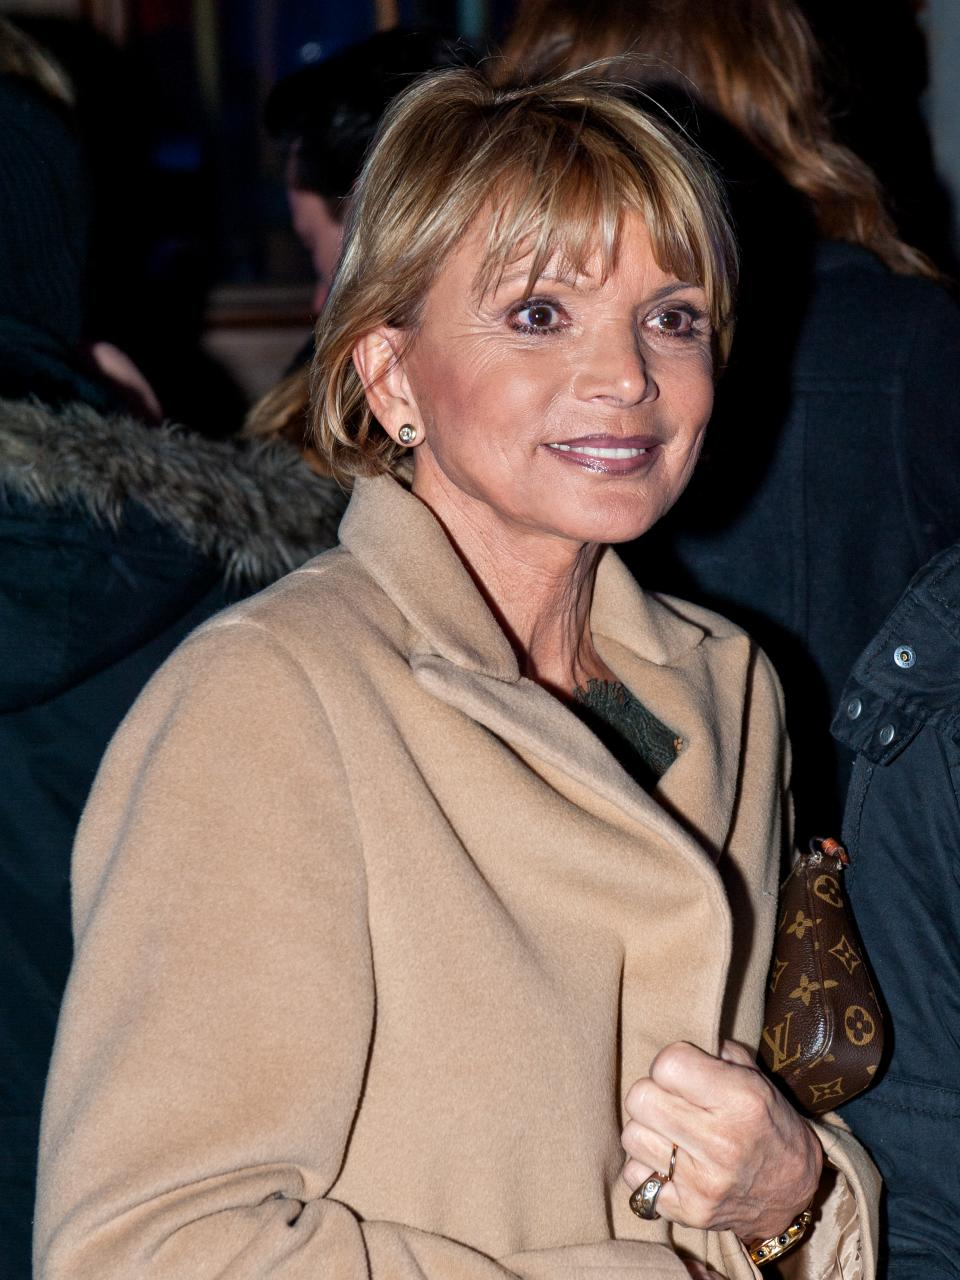 The 74-year old daughter of father (?) and mother(?) Uschi Glas in 2018 photo. Uschi Glas earned a  million dollar salary - leaving the net worth at 5 million in 2018